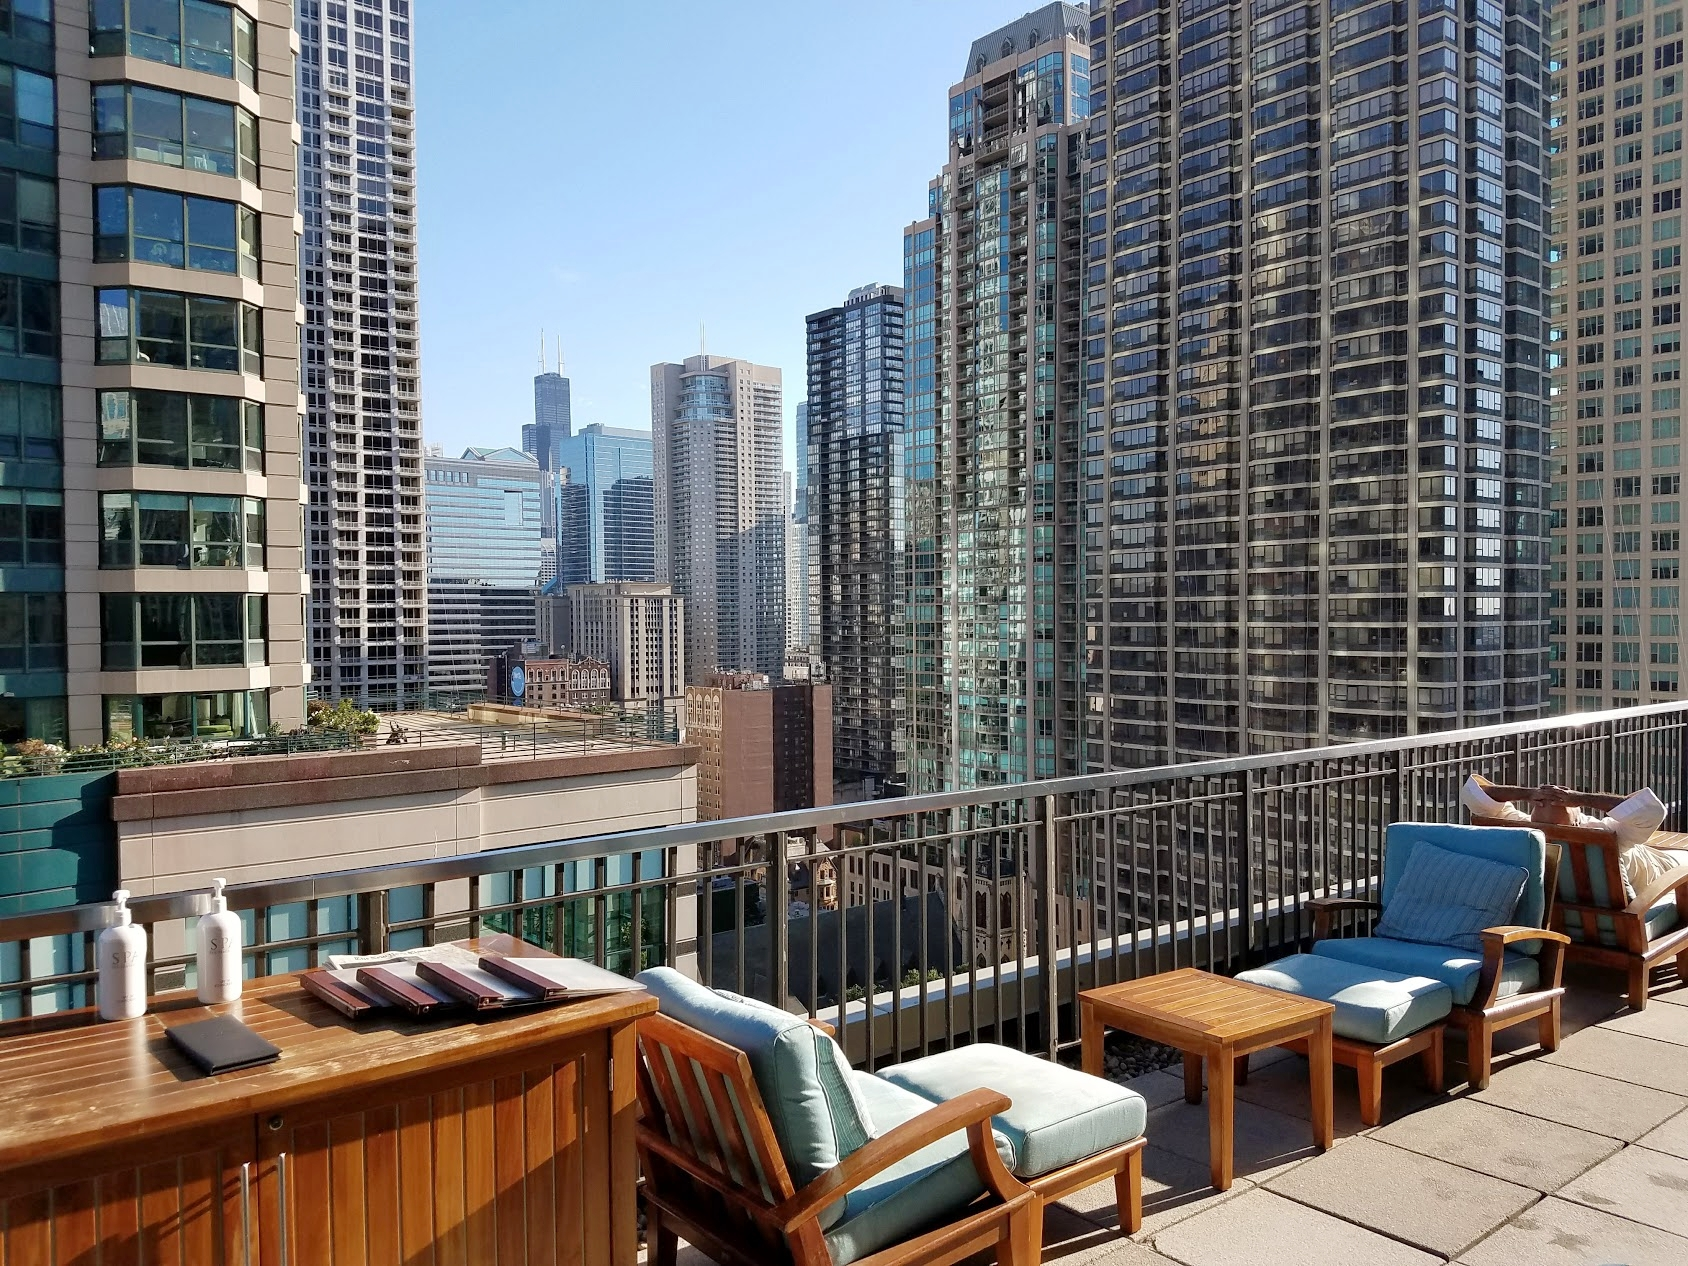 There's no other hotel in Chicago that has a pool on the 20th floor with an outdoor terrace to boot. Peninsula Chicago wears that crown.